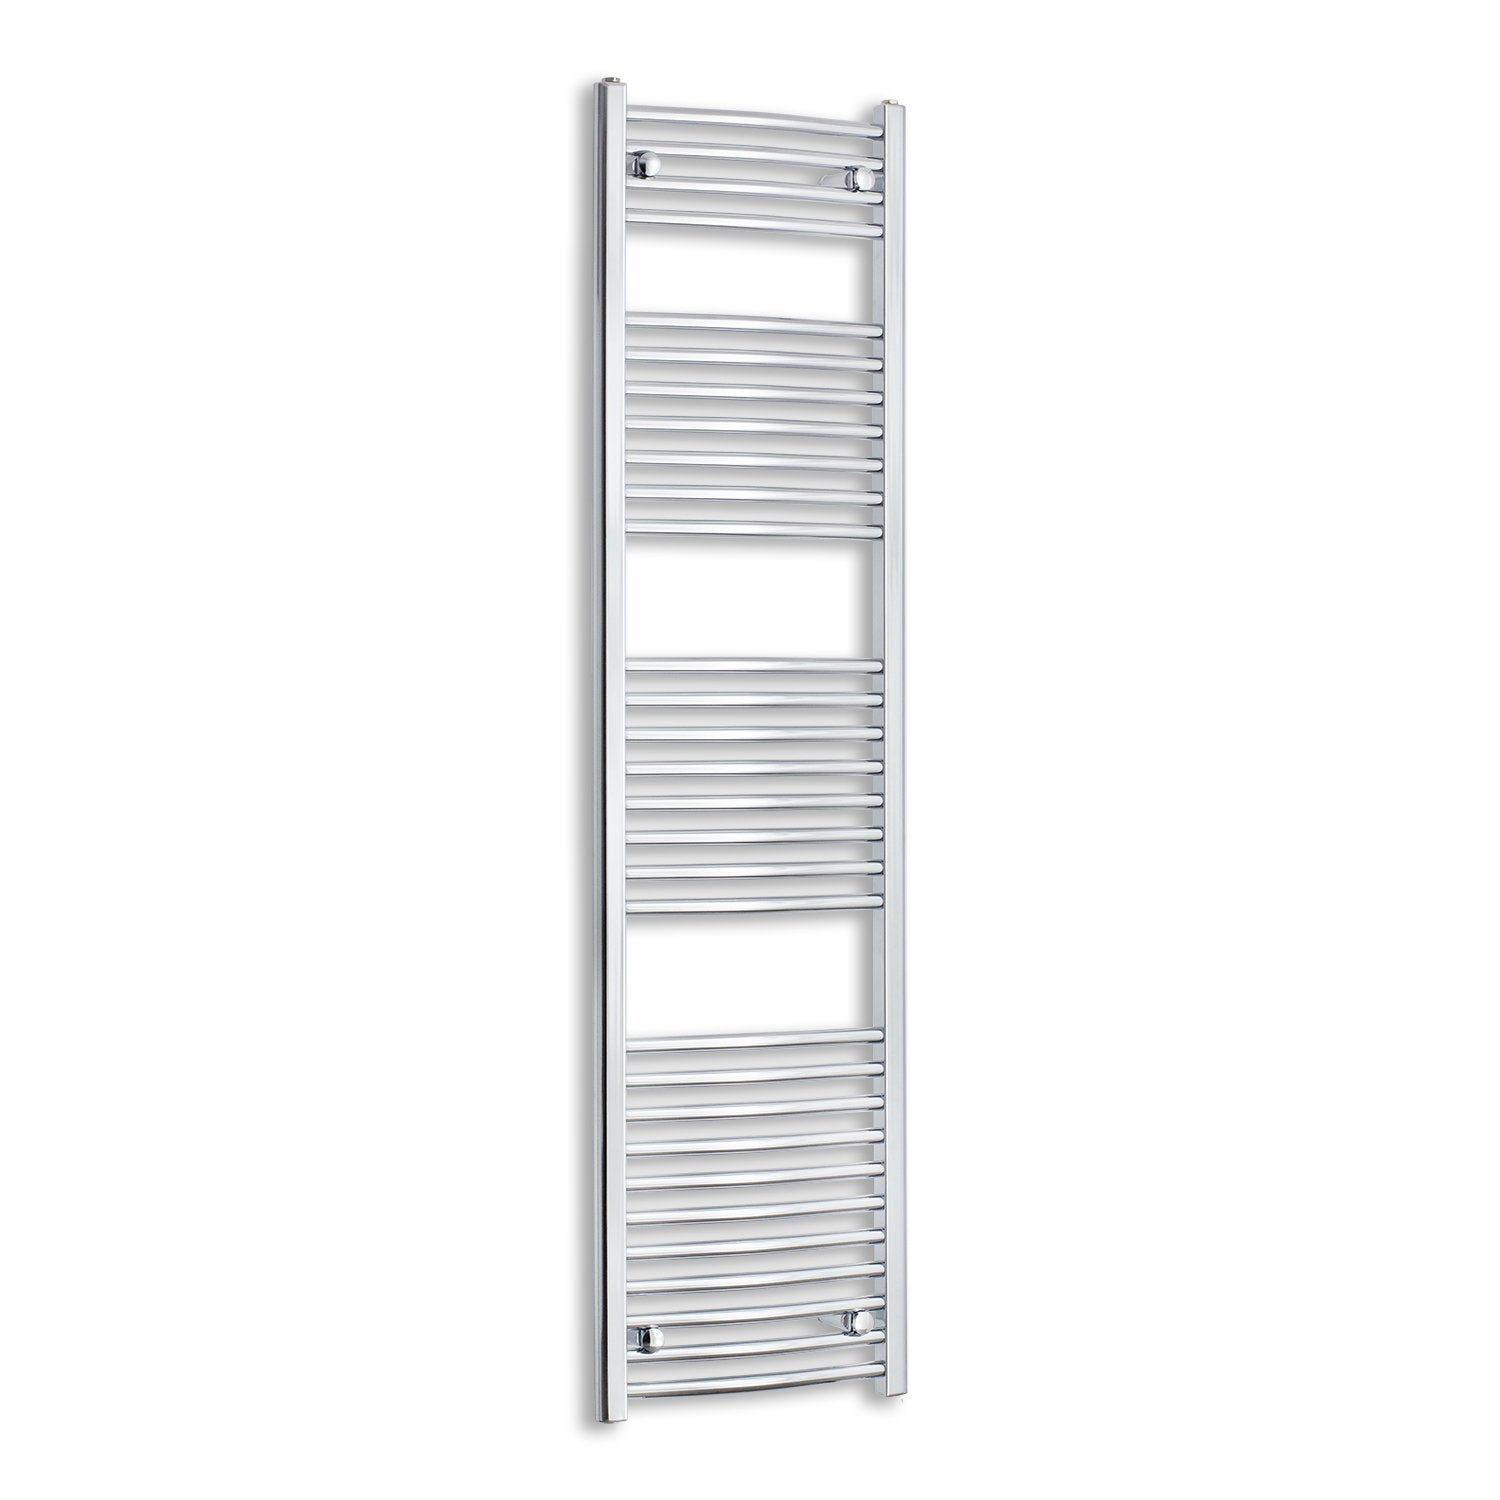 450mm Wide 1700mm High Flat Chrome Heated Towel Rail Radiator HTR,Towel Rail Only